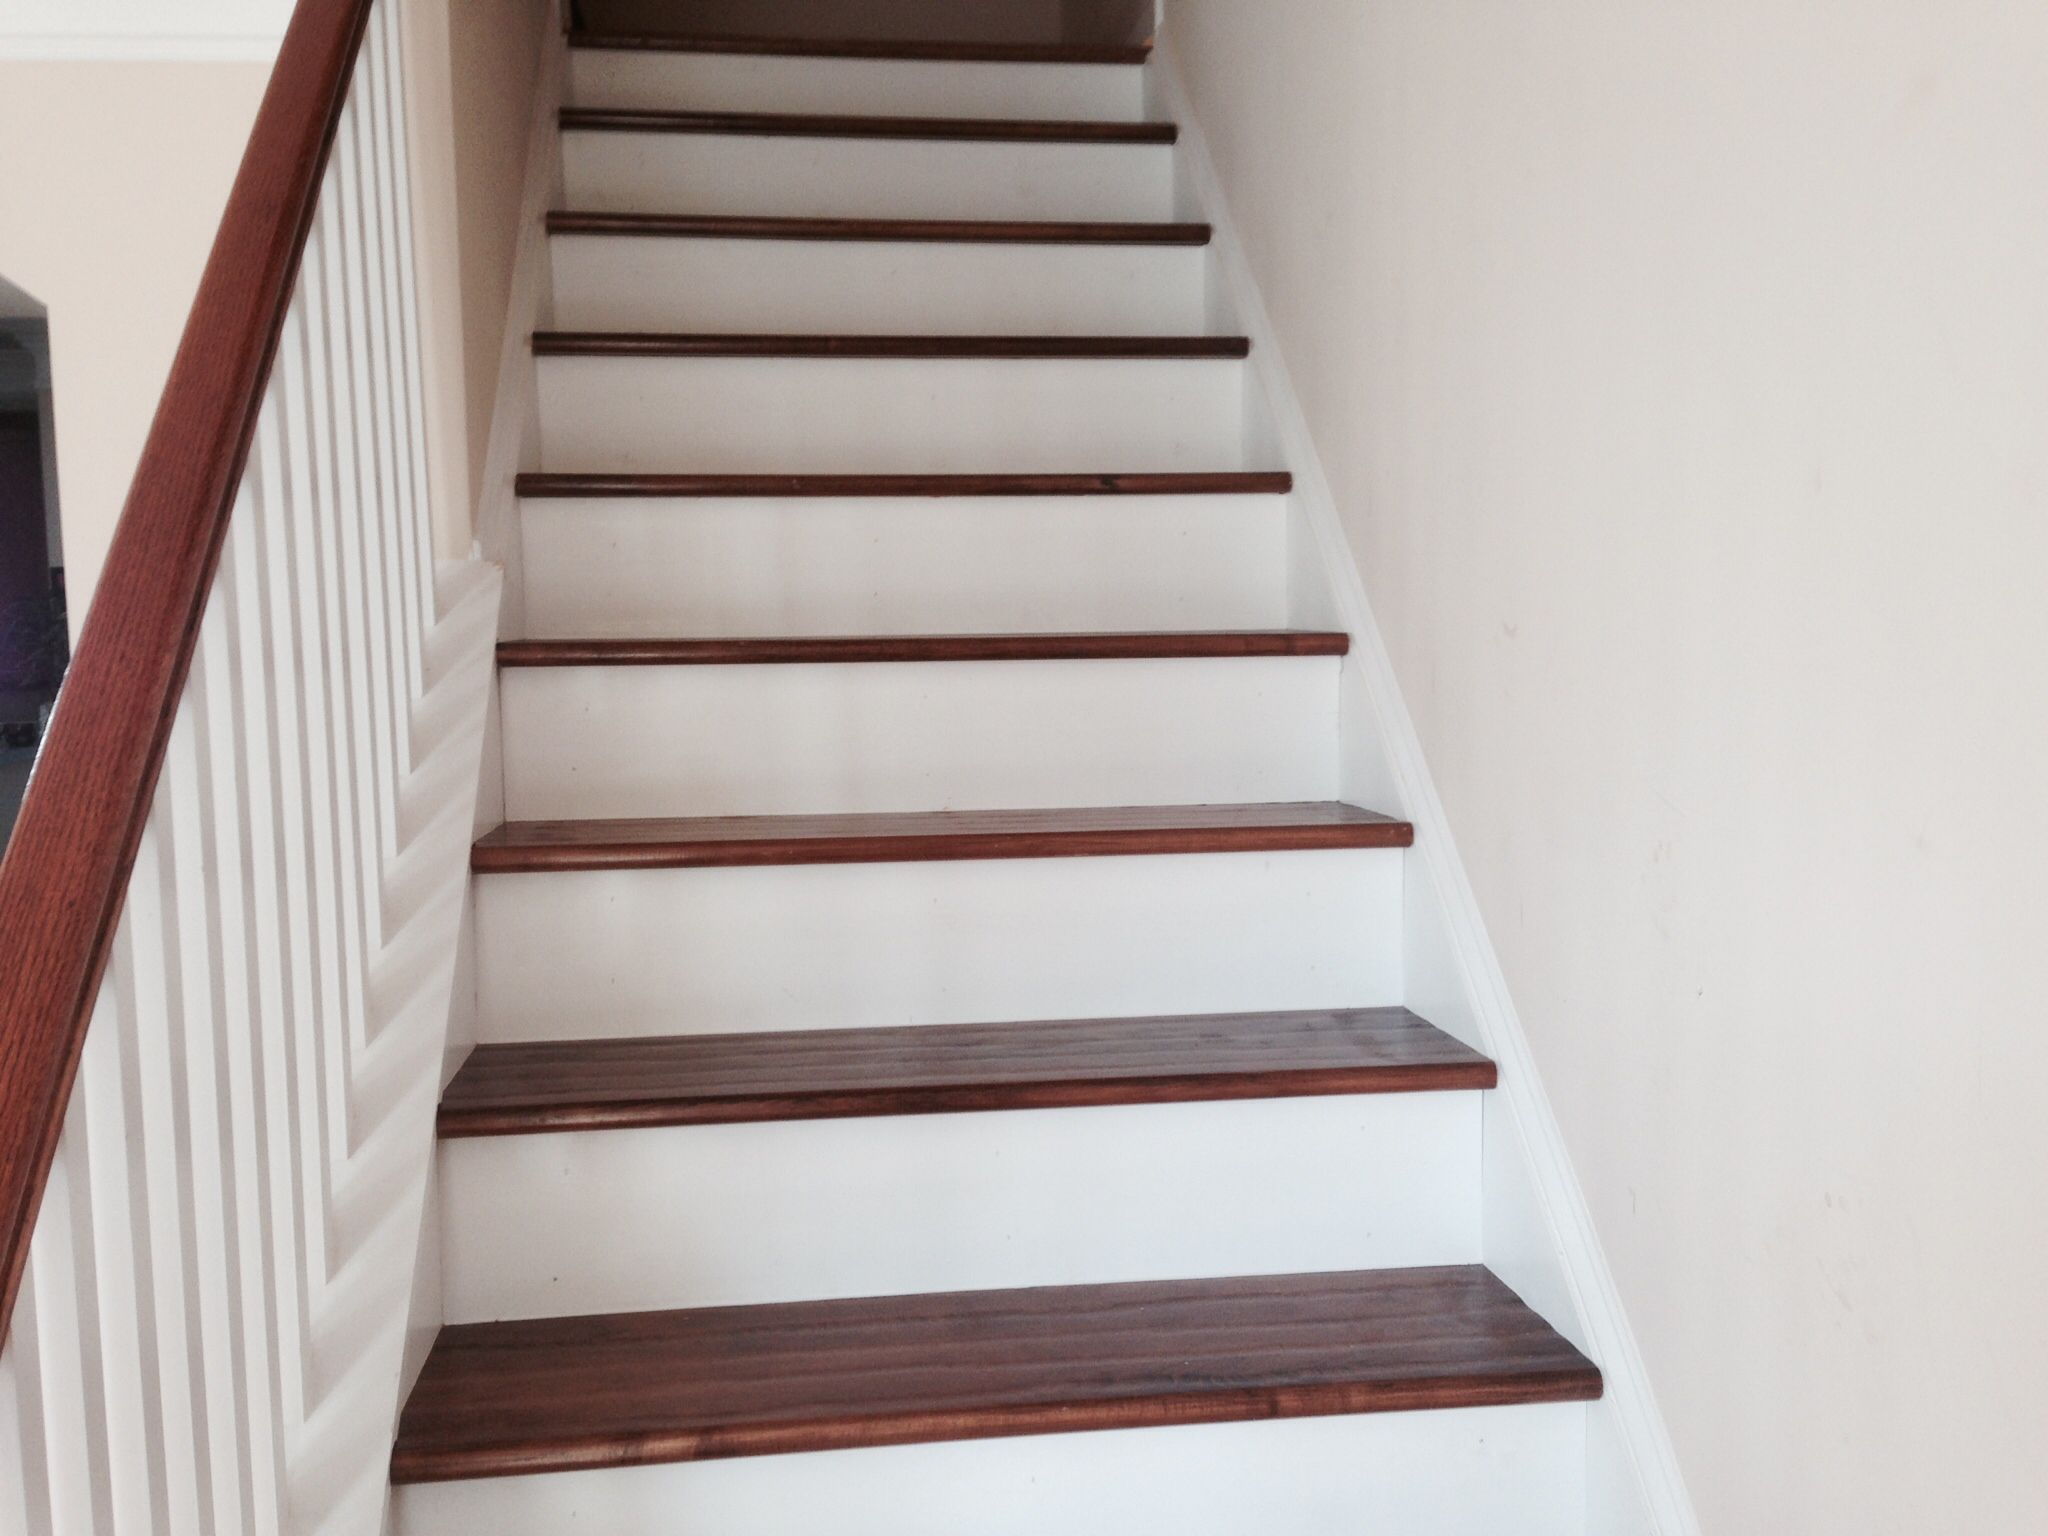 Hand Scraped Hard Maple Stair Tread With White Risers Stair | Solid Maple Stair Treads | Soft Maple | Stair Parts | Risers | Red Oak Stair | Hardwood Floors